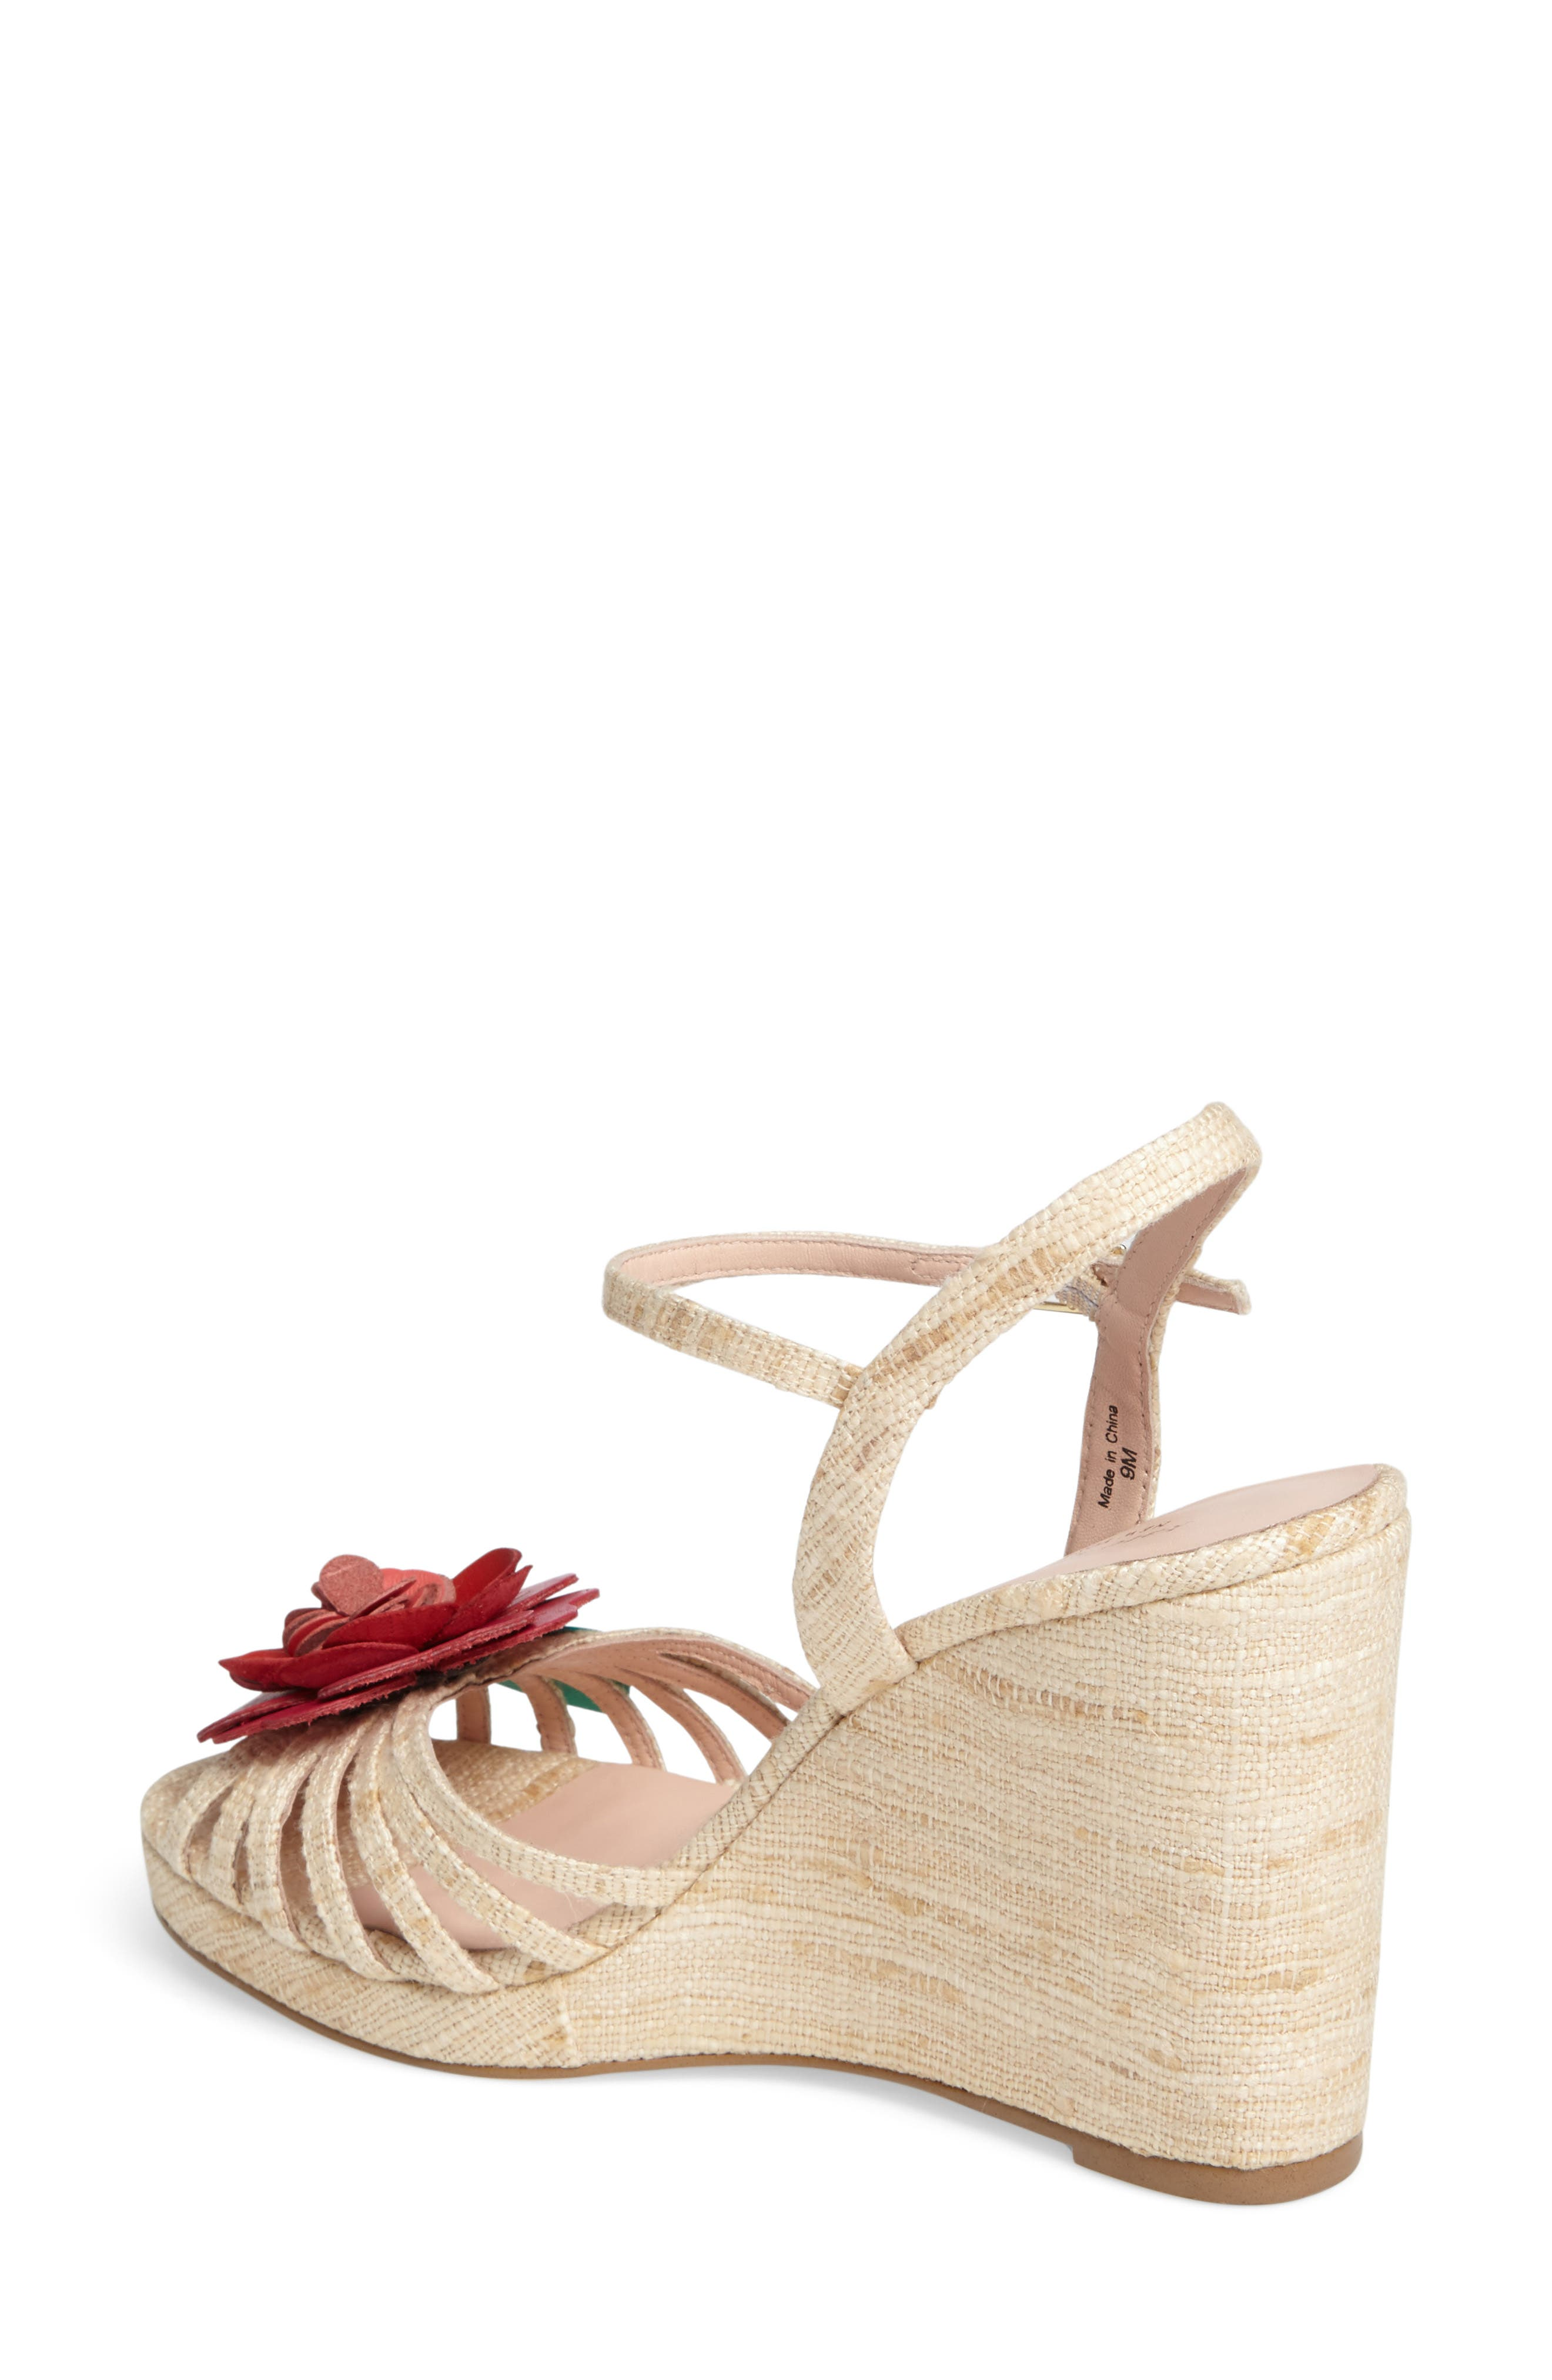 beekman strappy wedge sandal,                             Alternate thumbnail 2, color,                             Natural Raw Silk